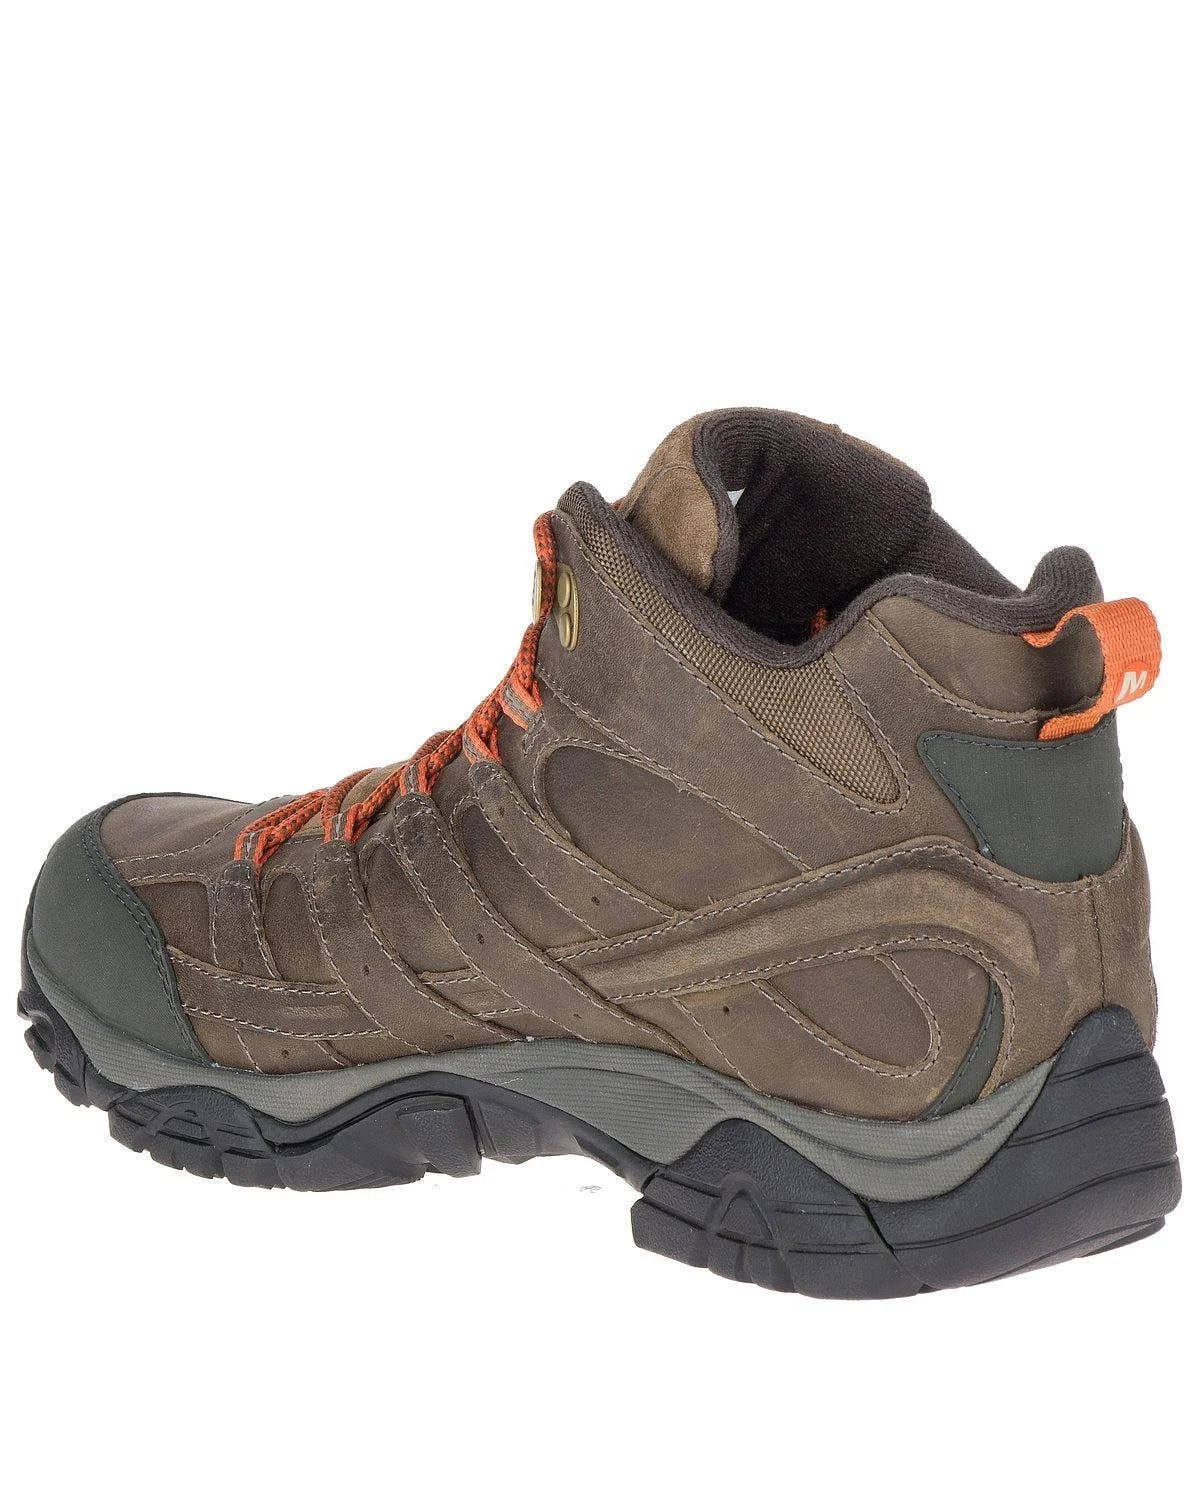 MERRELL - MOAB 2 PRIME MID WP M - 11.5 - WIDE - Canteen